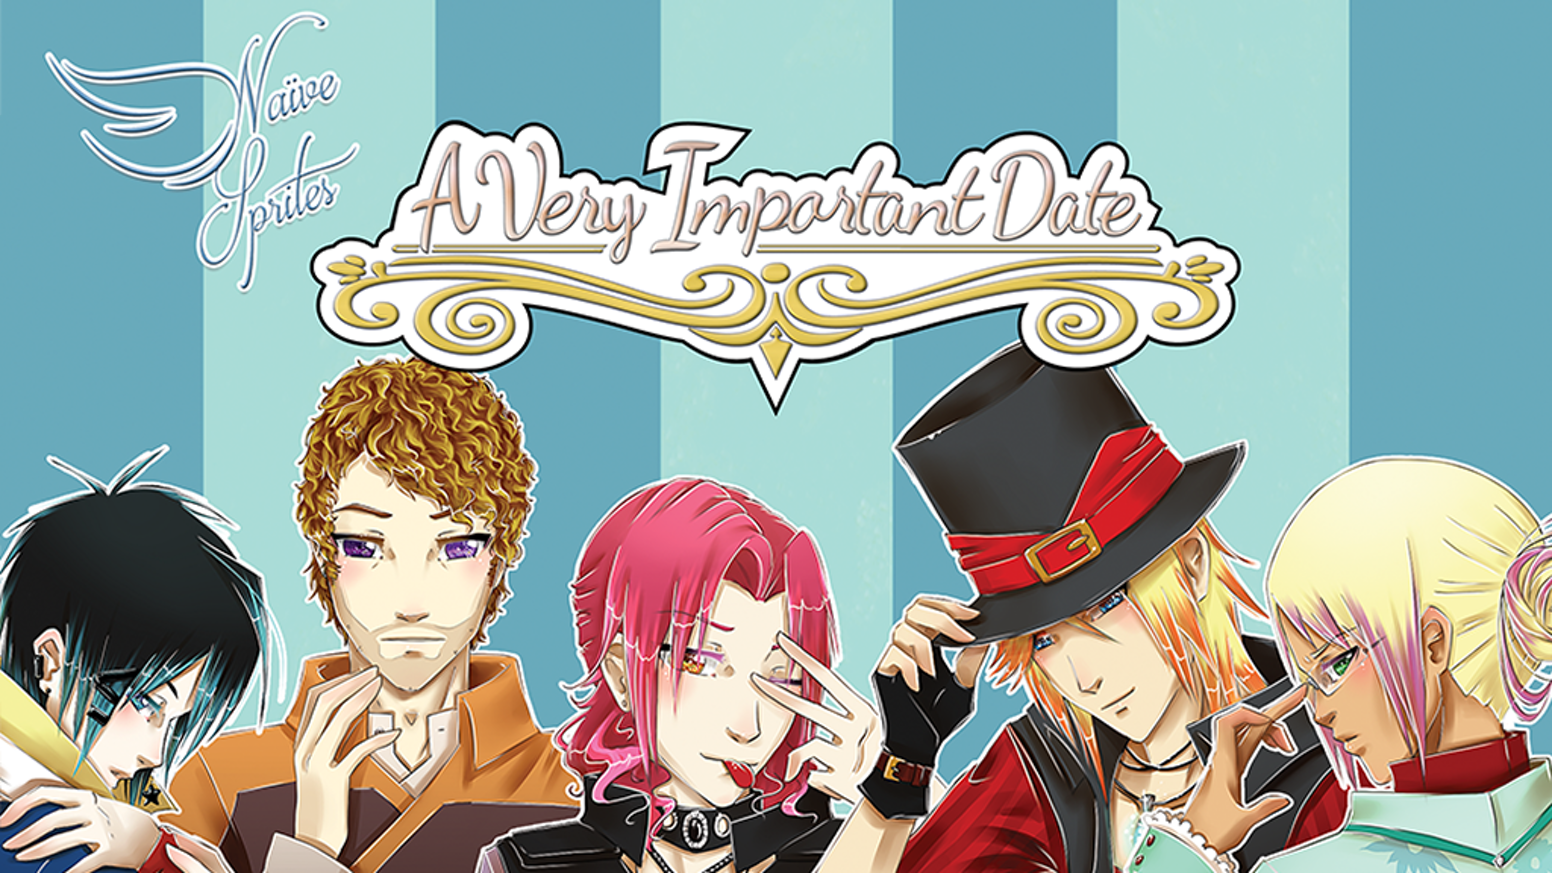 A romantic slice of life meets fantasy story that everyone can enjoy, with slight nods to Lewis Carroll's Alice stories. [GxB/GxG/BxB]